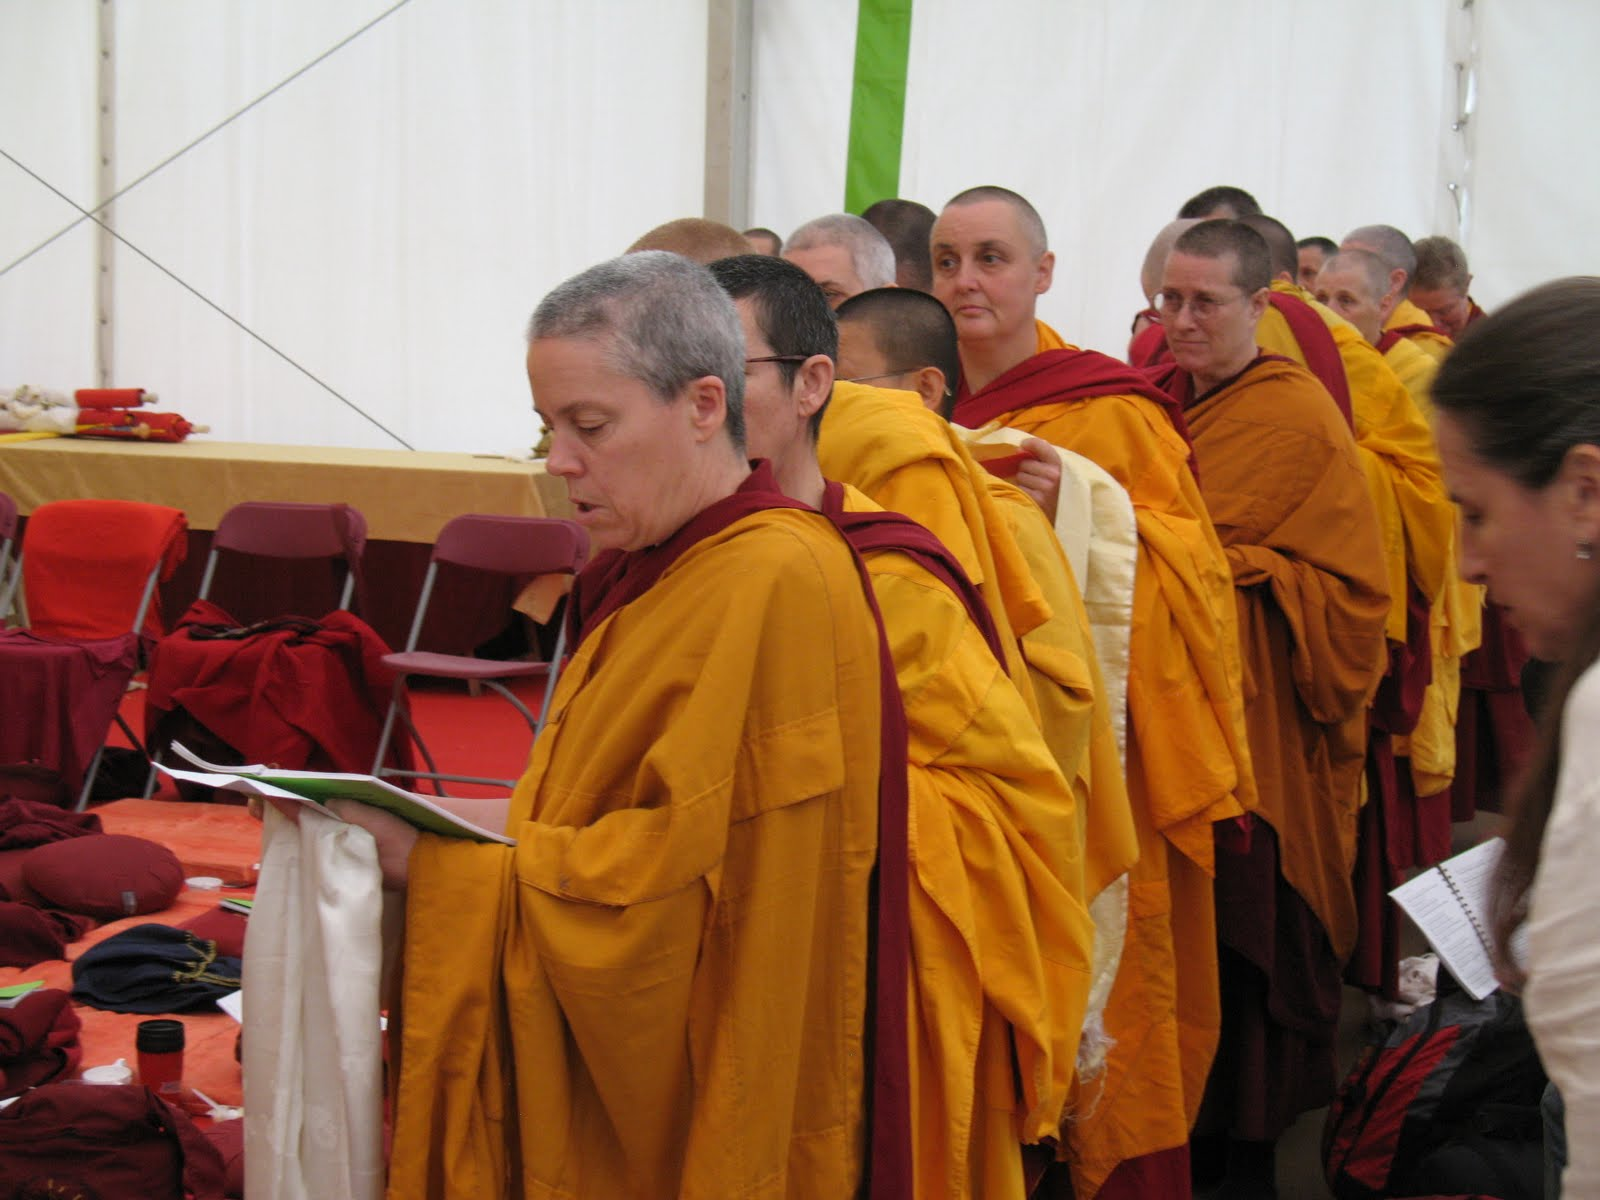 Ven. Joan and sangha during long Life puja offered to Lama Zopa Rinpoche after the CPMT Meeting at Institut Vajra Yogini, France, May 2009.